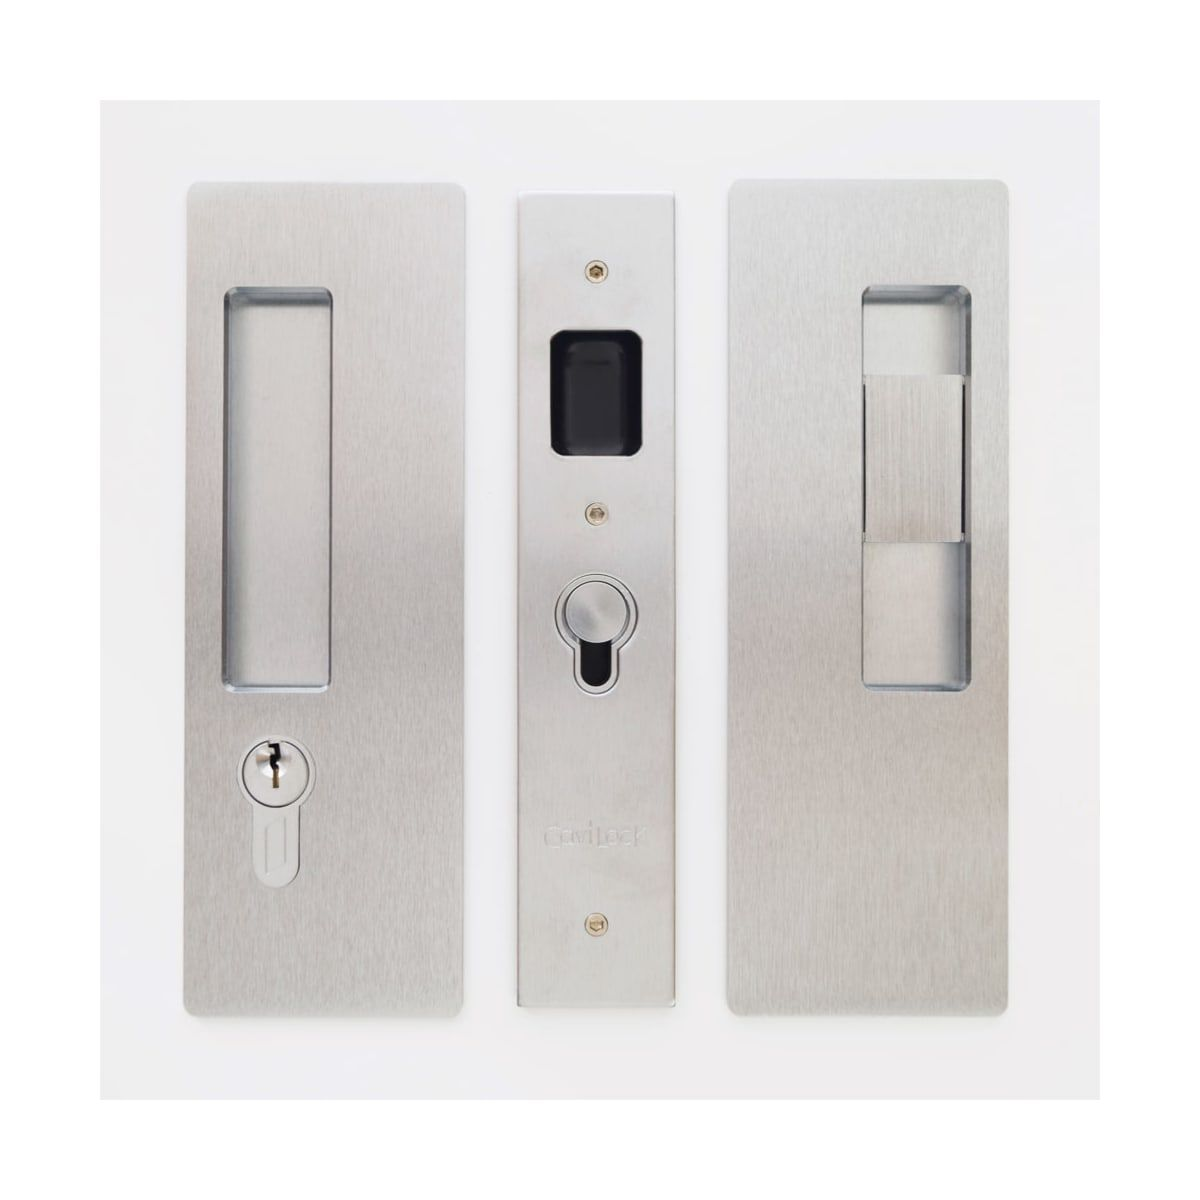 Cavilock Cl400c Ke 38 Rh Build Com In 2020 Pocket Doors Pocket Door Lock Lock Set